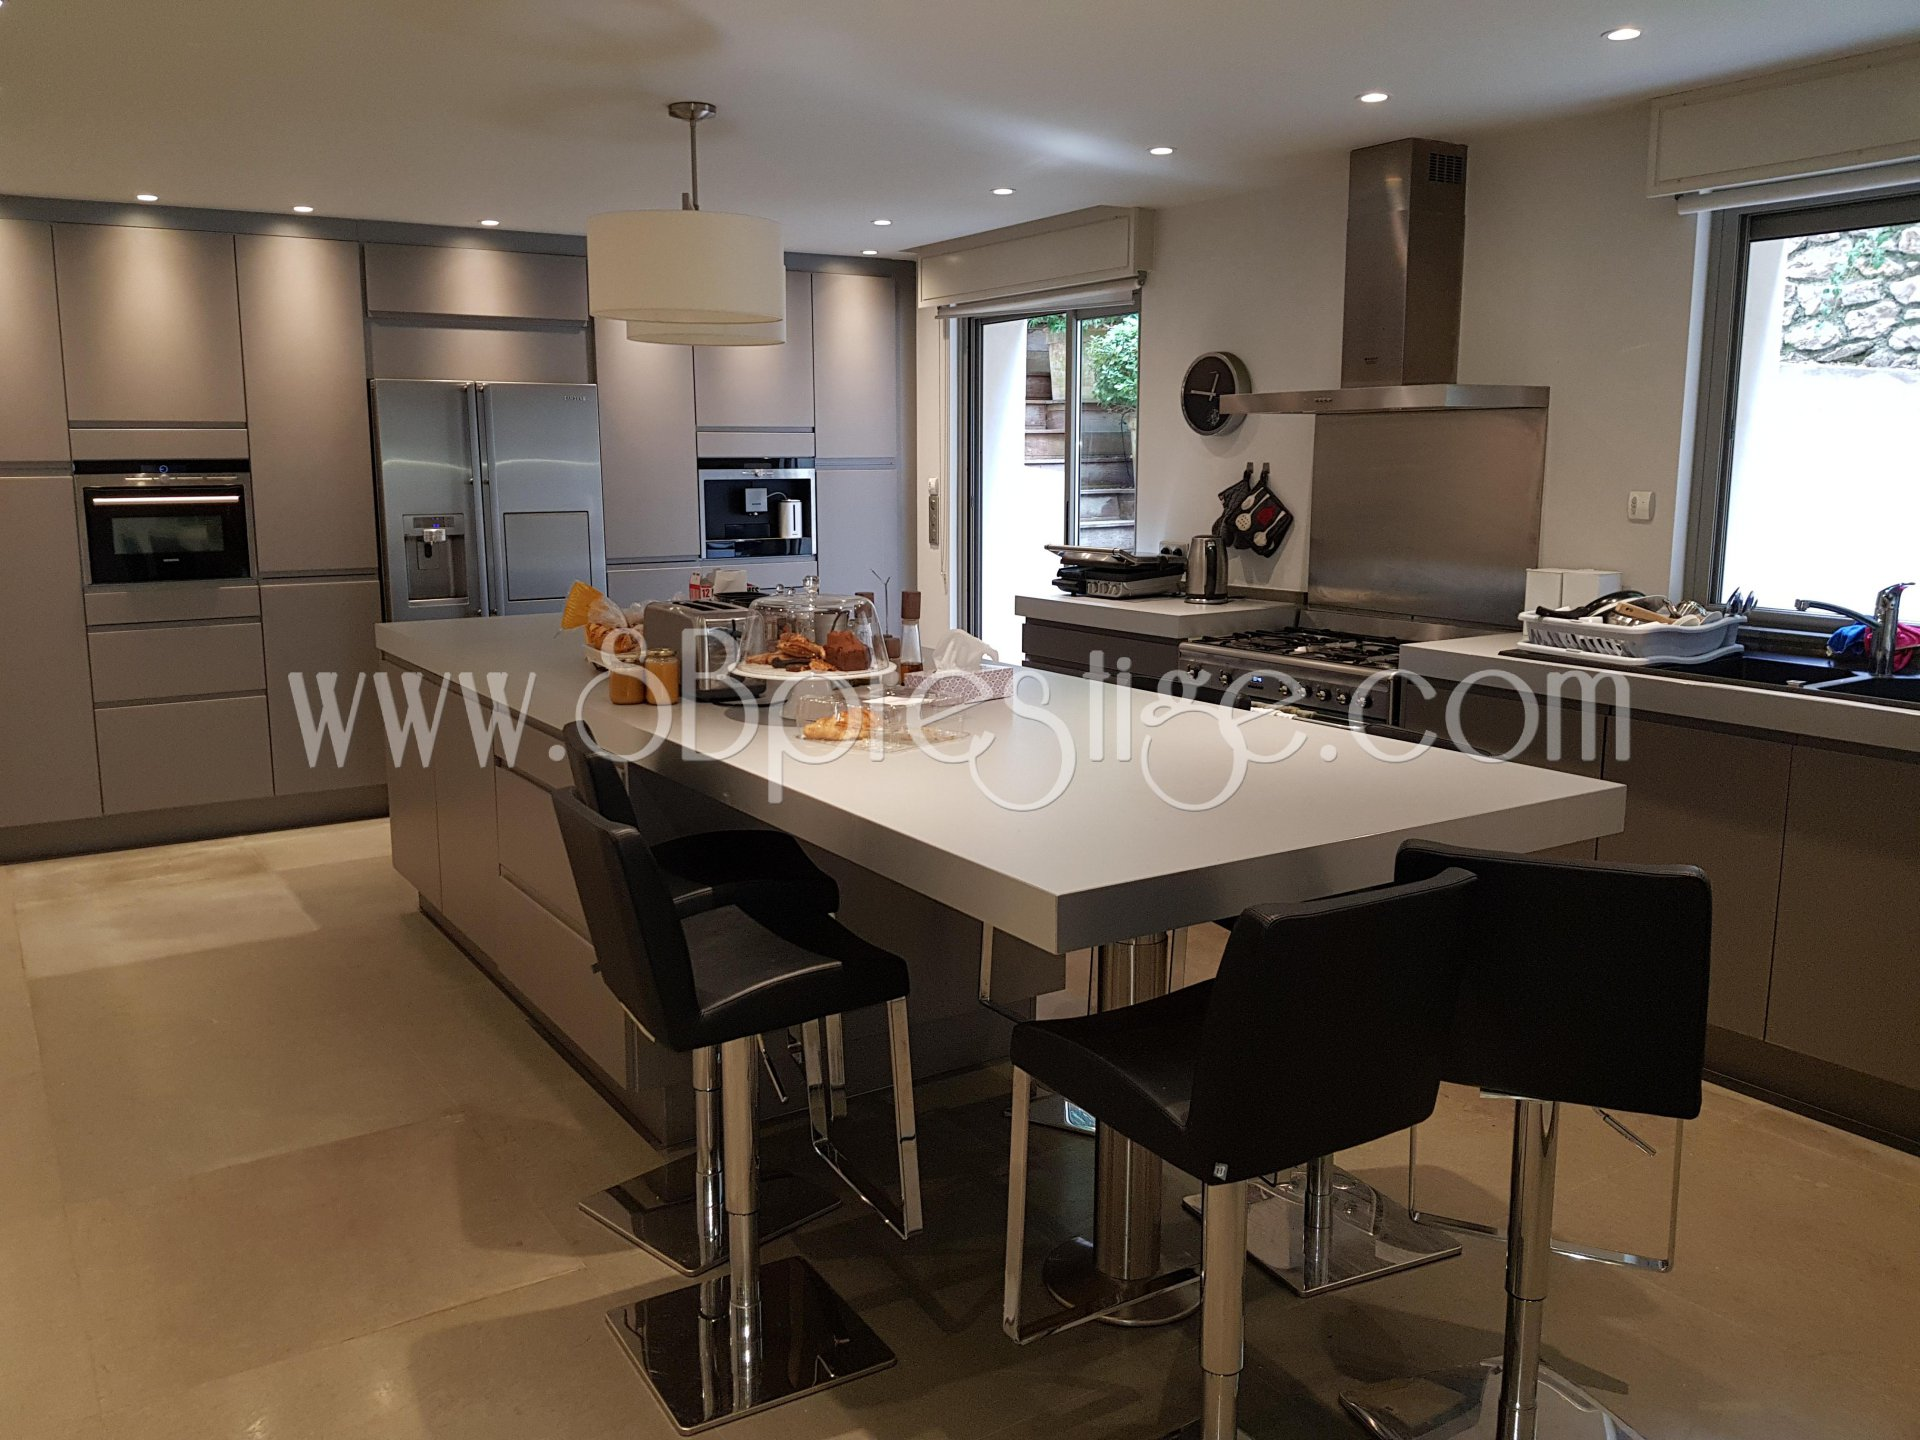 Stainless steel, kitchen bar, kitchen island